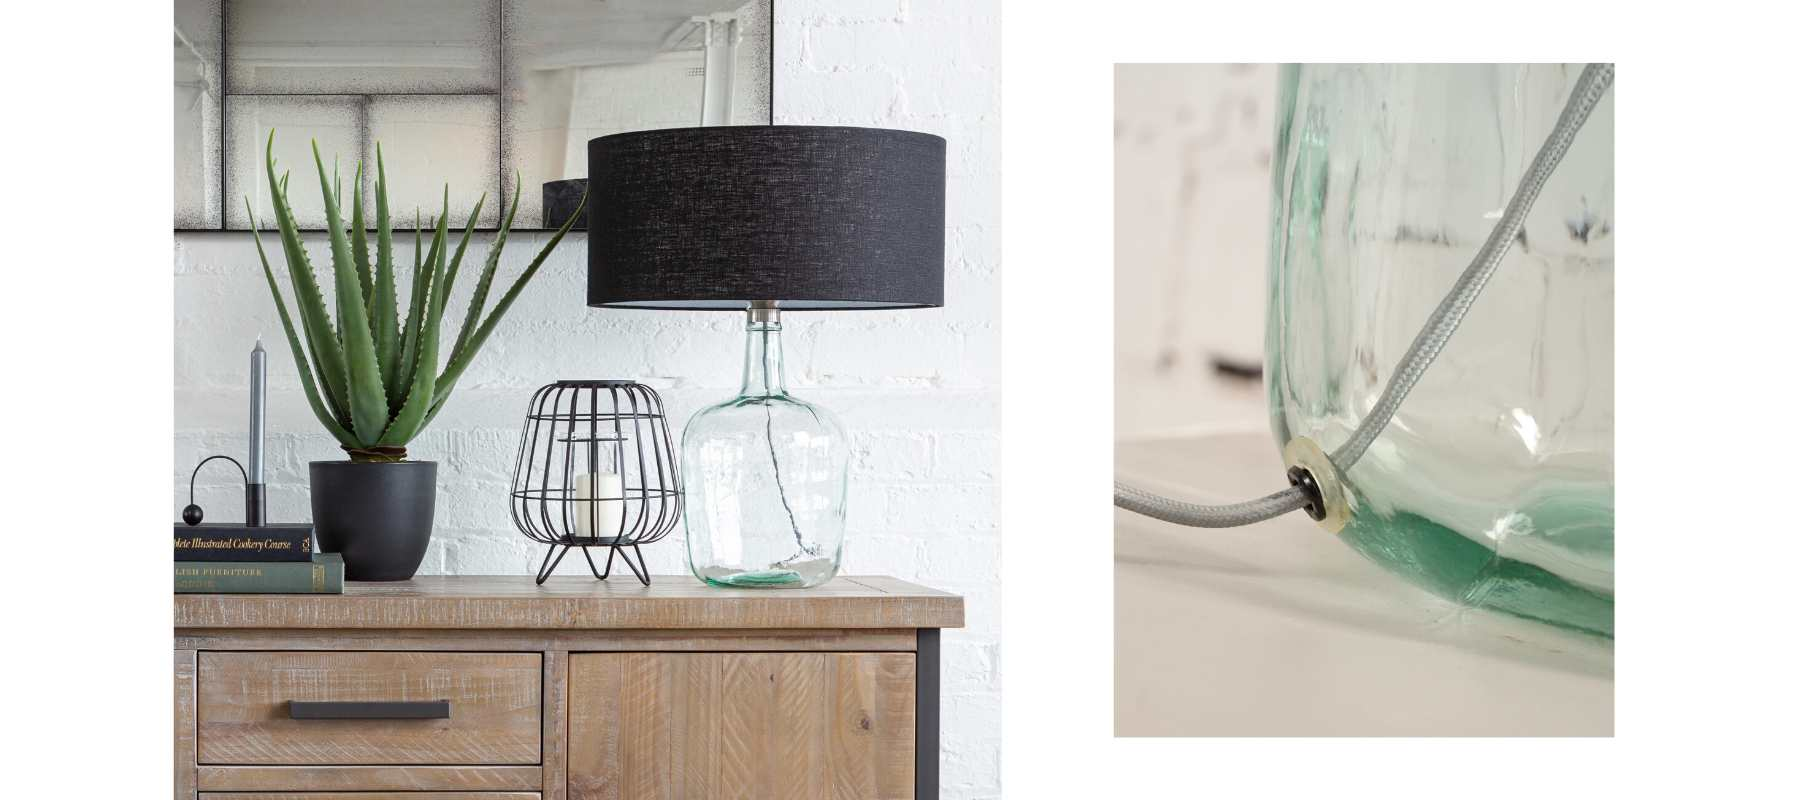 Mia glass table lamp with coloured shade and close up of glass